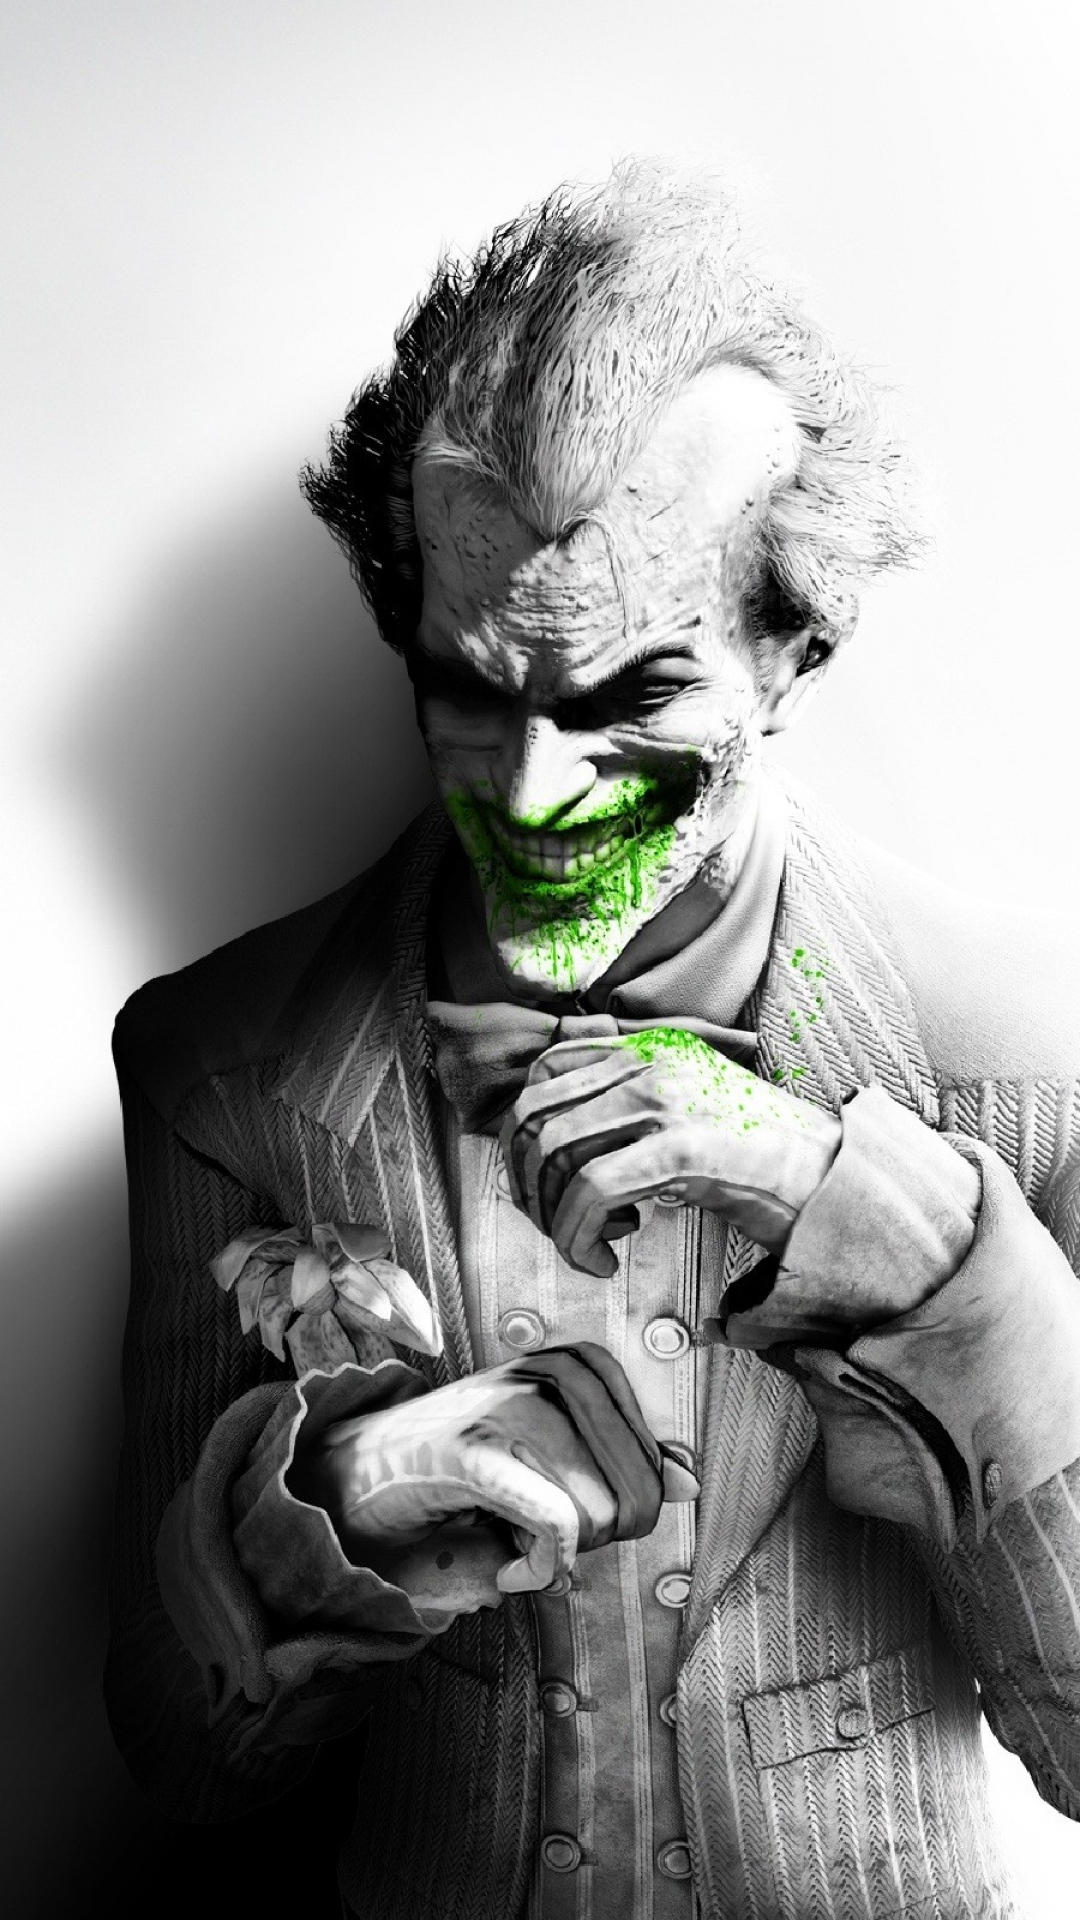 1080x1920-batman-arkham-city-joker-smile-suit-flower-fan-art-black-and-white-wallpaper-wpc900487